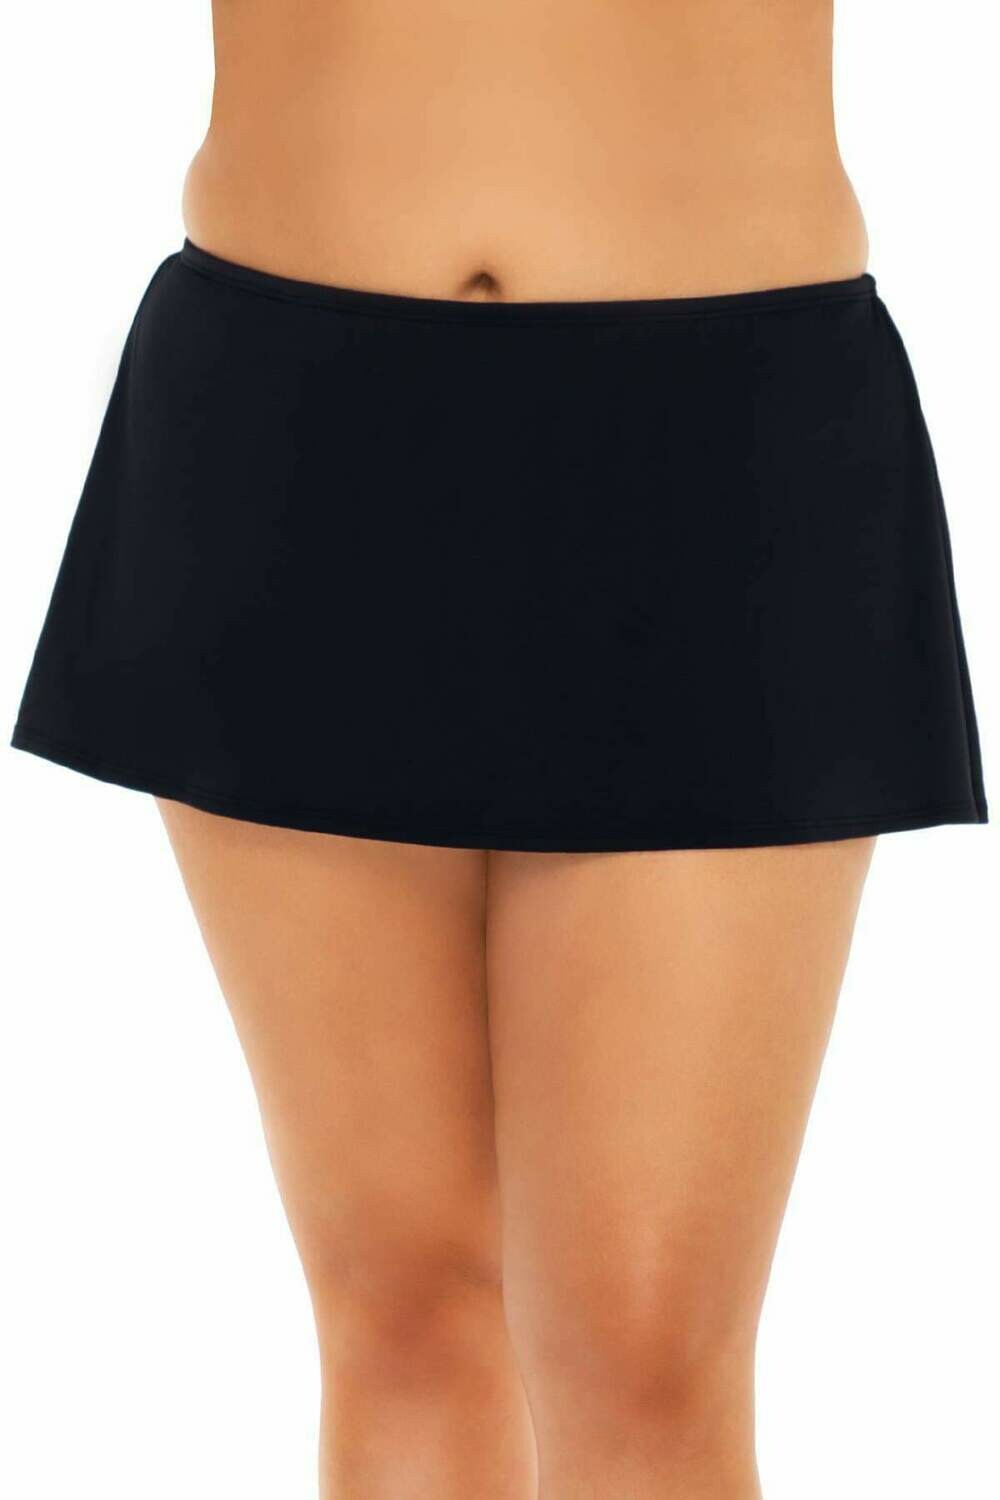 Sunsets Island Time Swim Skirt Black